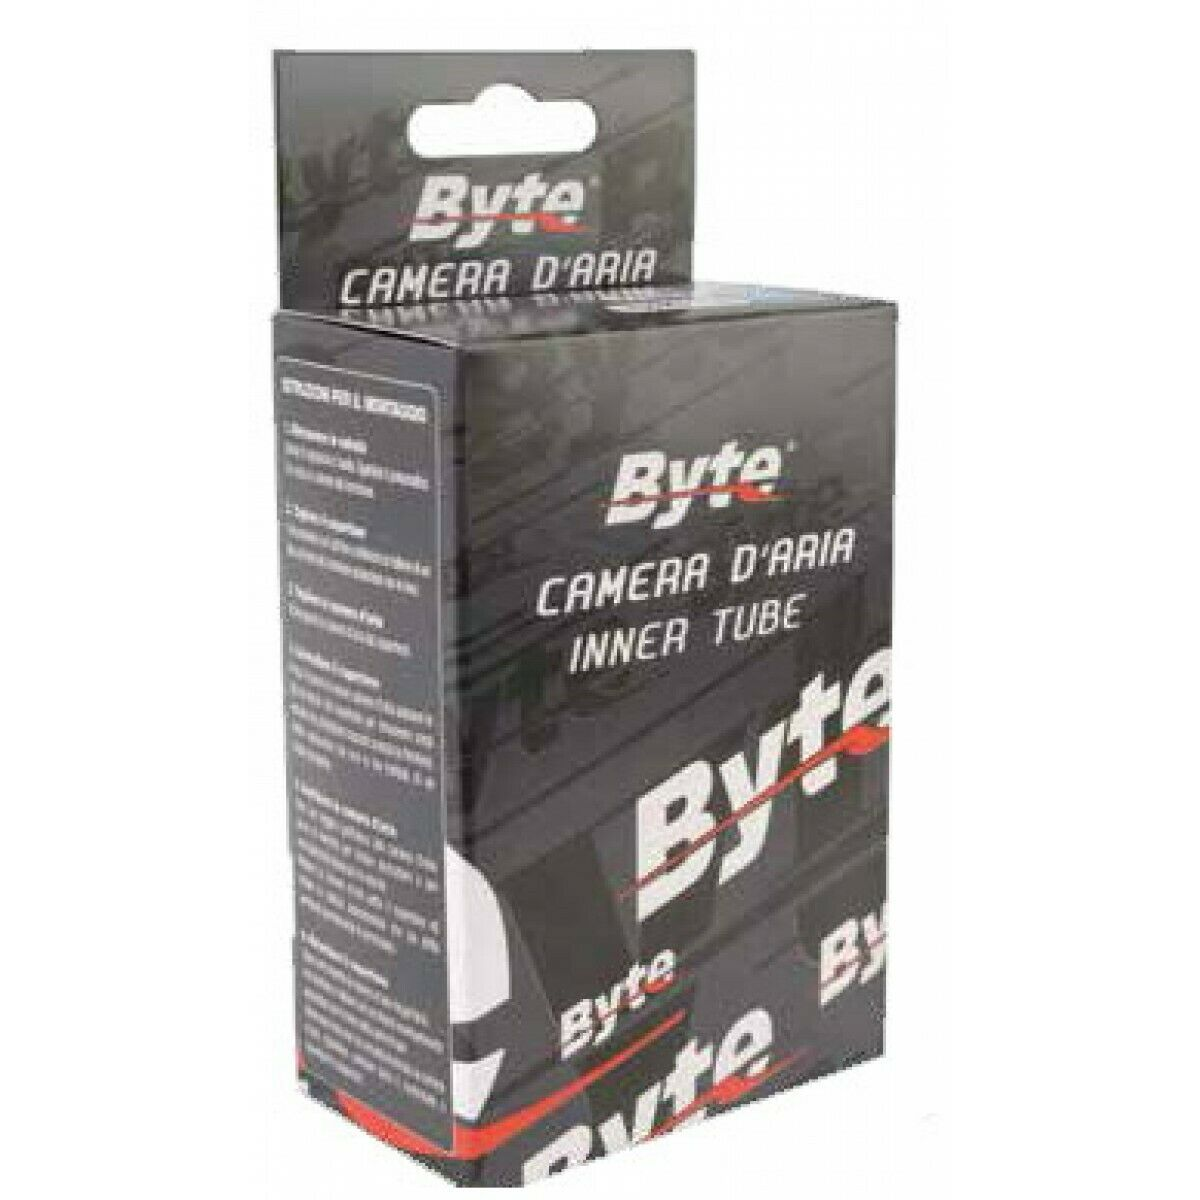 Camera d'aria Byte-Lygie